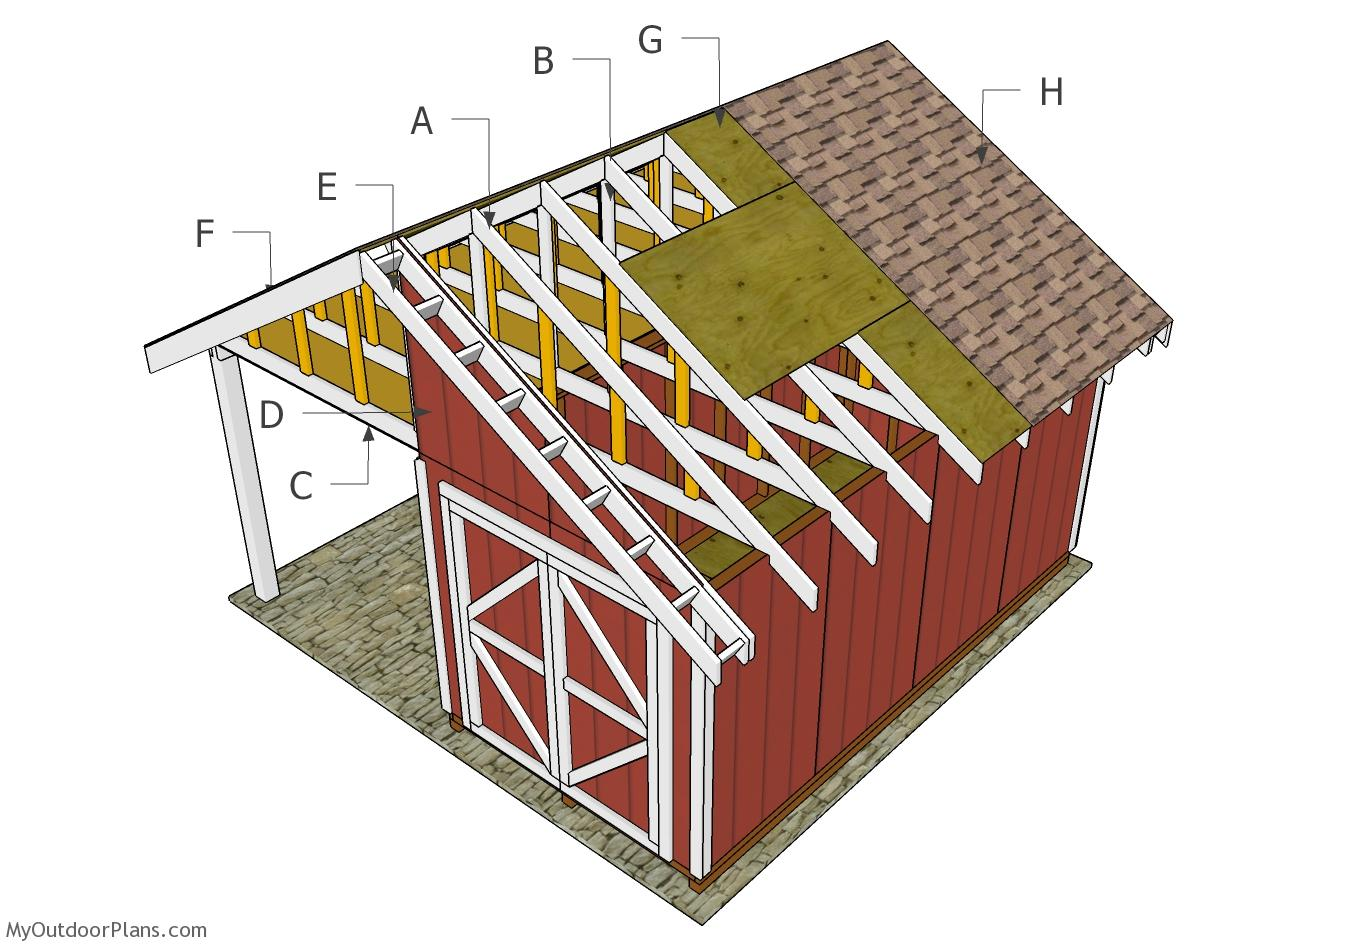 Building Plans For 10x16 Shed Easy